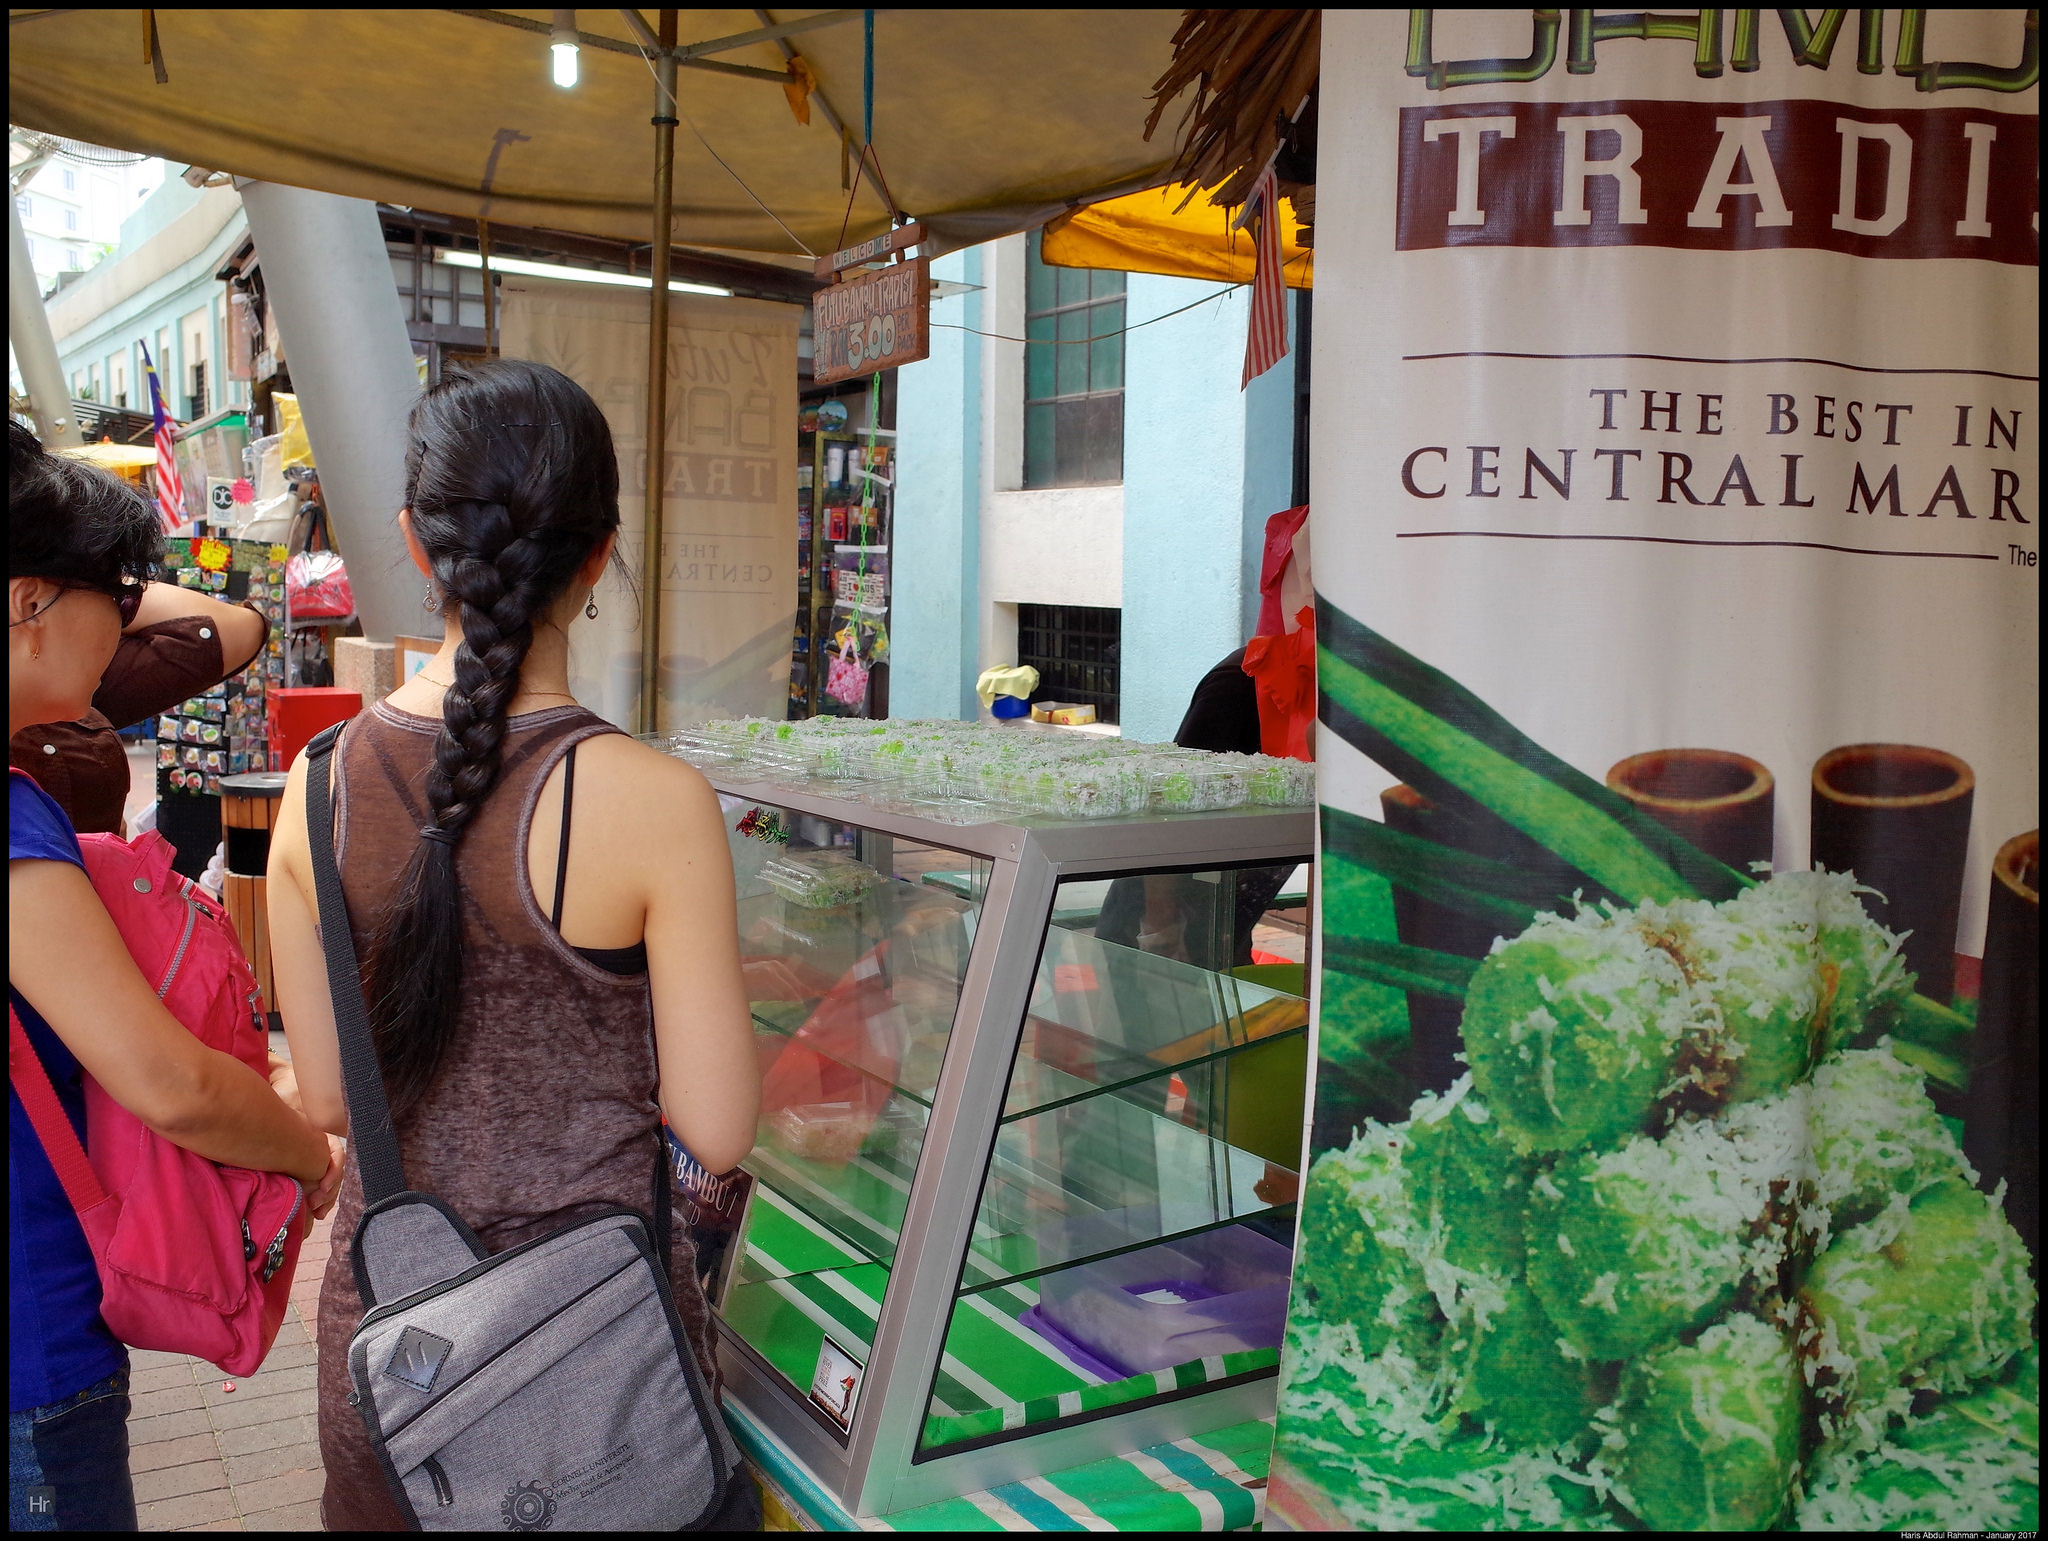 Across to Central Market